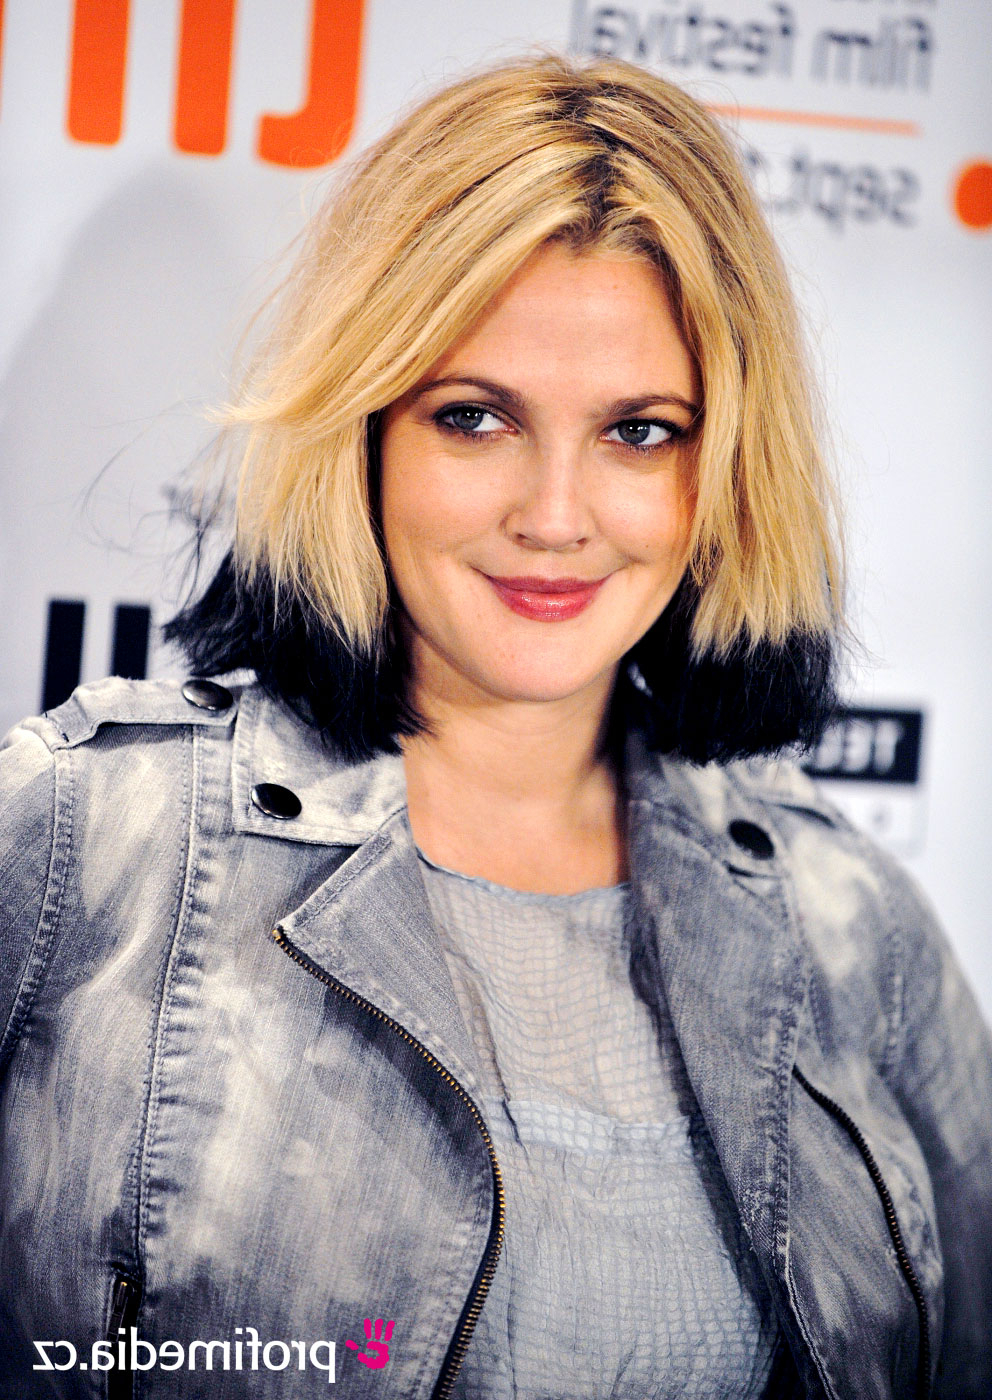 Drew Barrymore - - Hairstyle - Easyhairstyler within Drew Barrymore Short Hairstyles